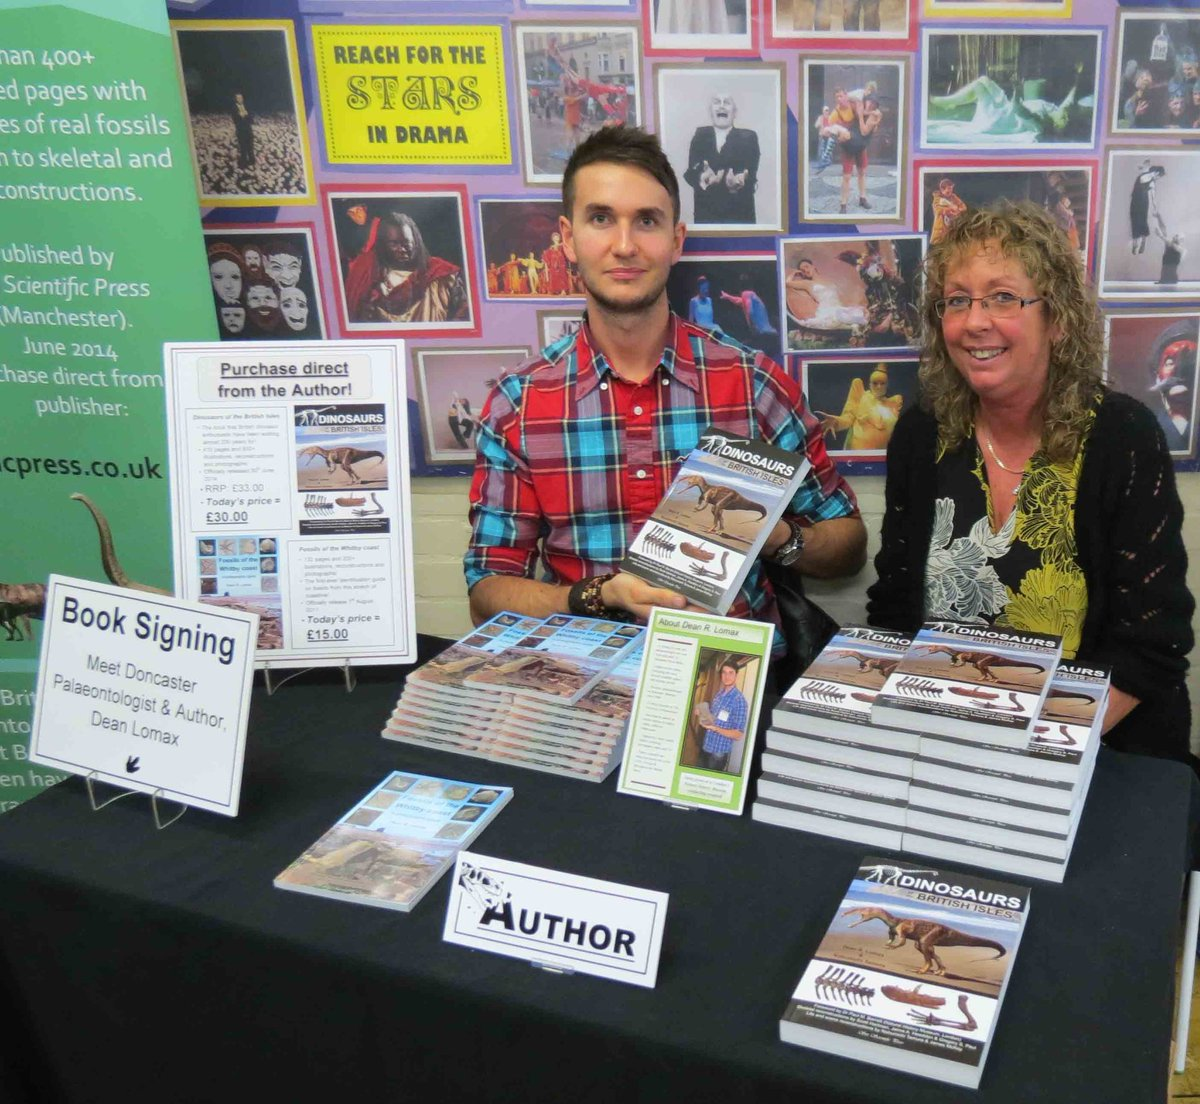 Mum came to as many of my events as she could, listening to my public lectures, helping to promote my books, even going fossil hunting and would race to tell all of her friends when I was on TV & Radio. She was excited to meet my palaeontology friends & hear of their adventures.